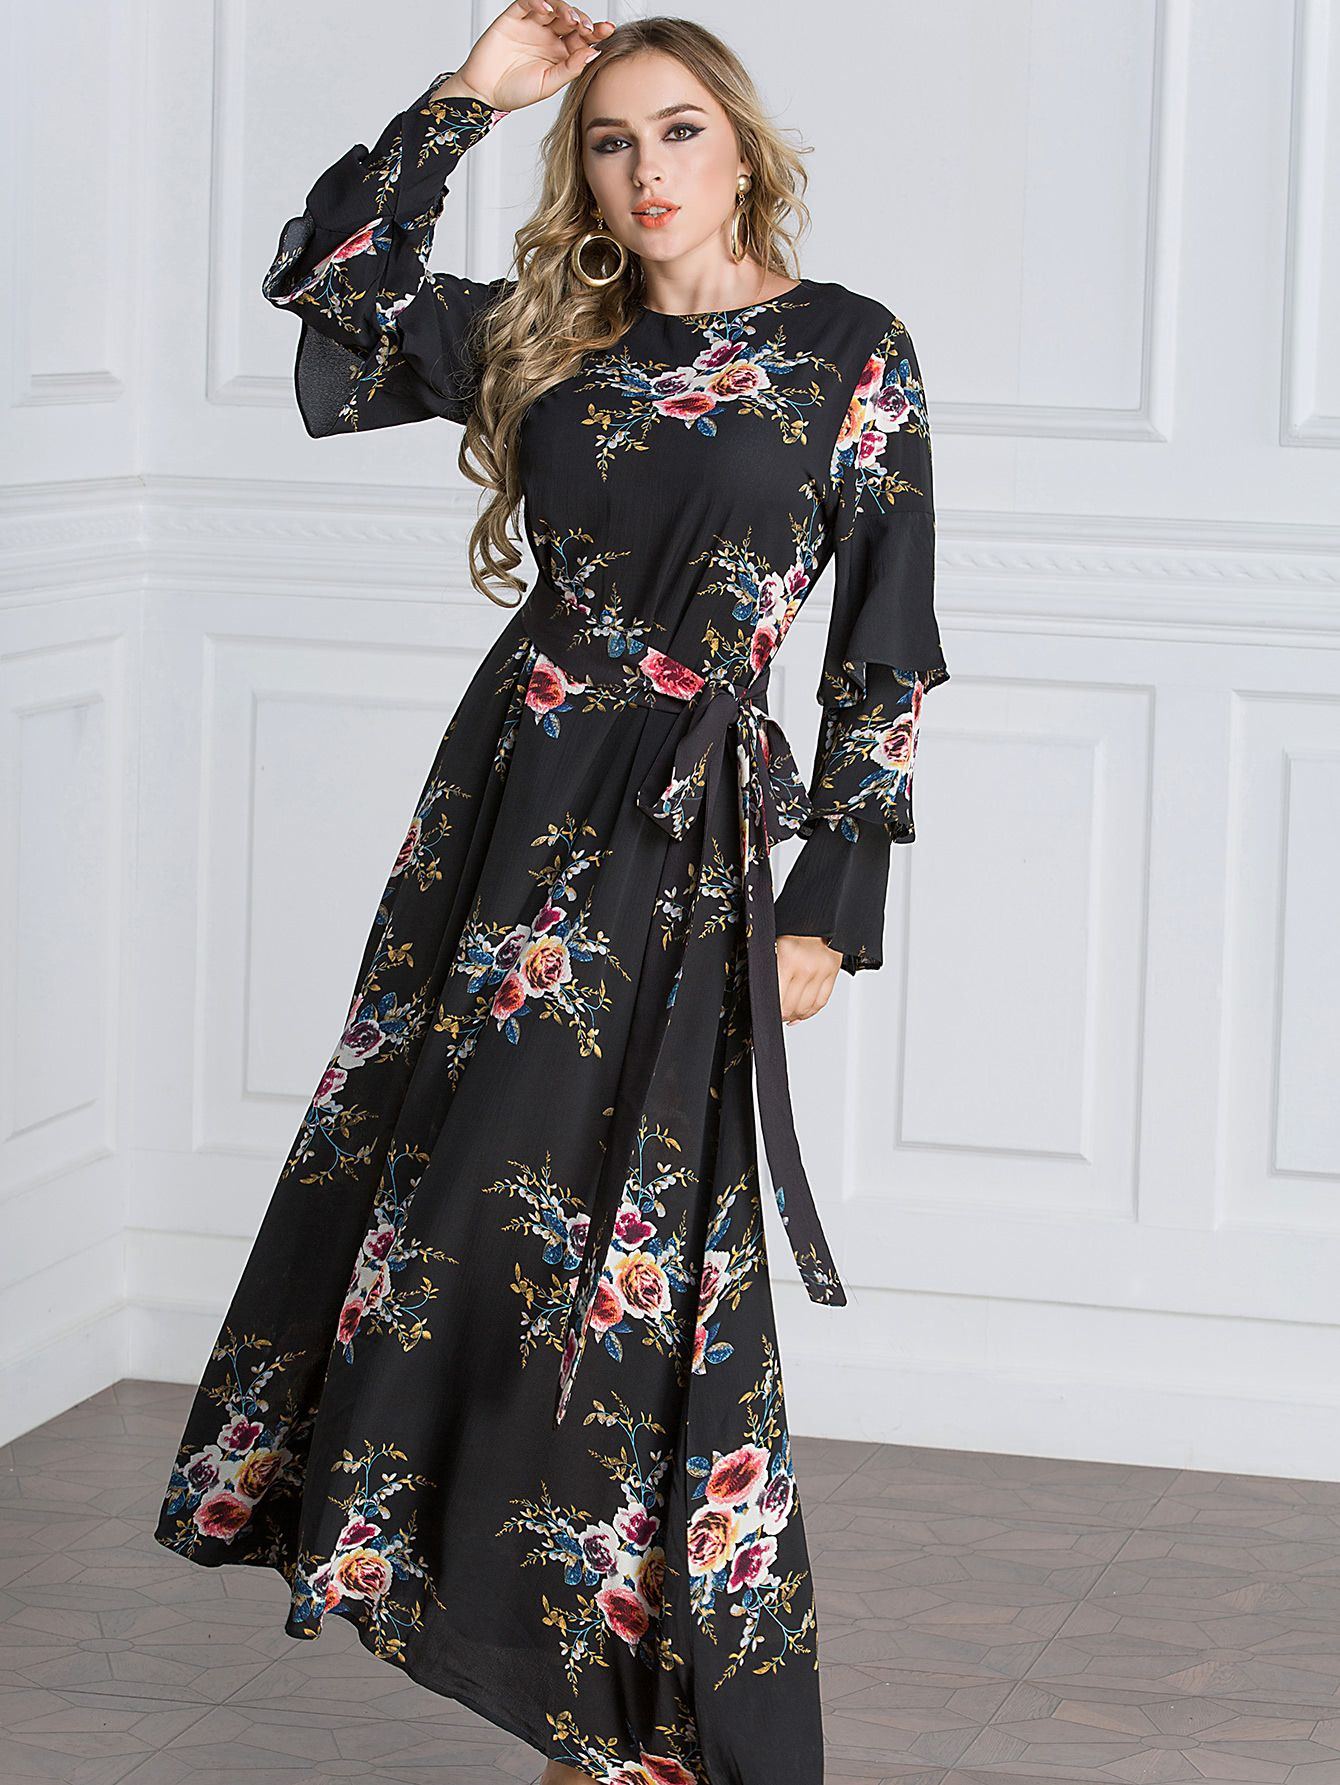 a722ccc0ee10 Shop Botanical Print Flounce Layered Sleeve Tie Waist Dress online. SheIn  offers Botanical Print Flounce Layered Sleeve Tie Waist Dress   more to fit  your ...